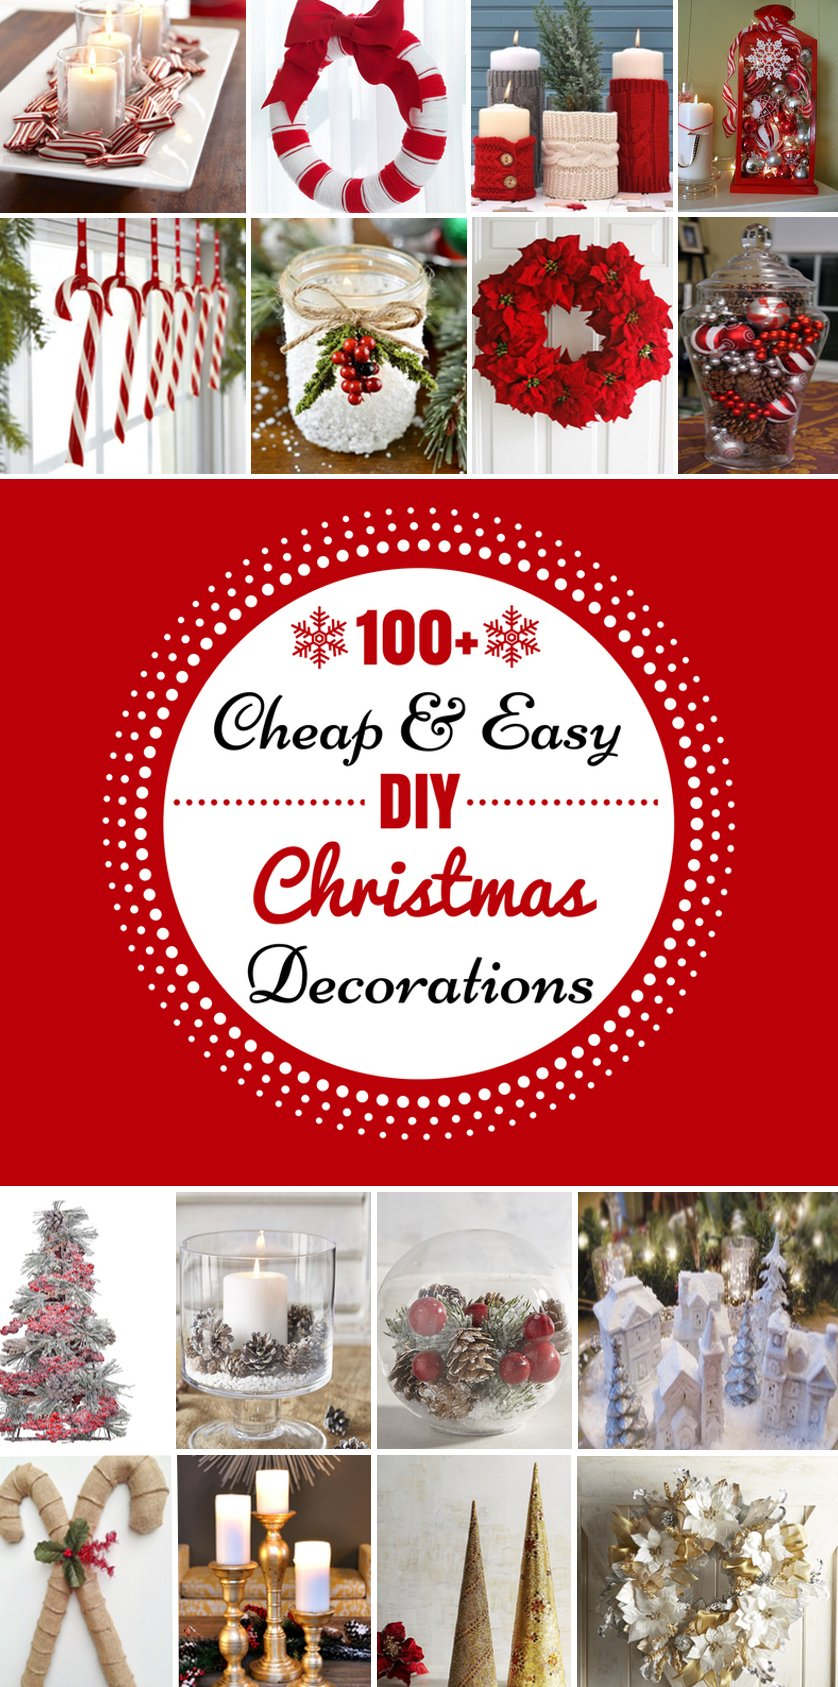 100 Cheap & Easy DIY Christmas Decorations - Prudent Penny ...